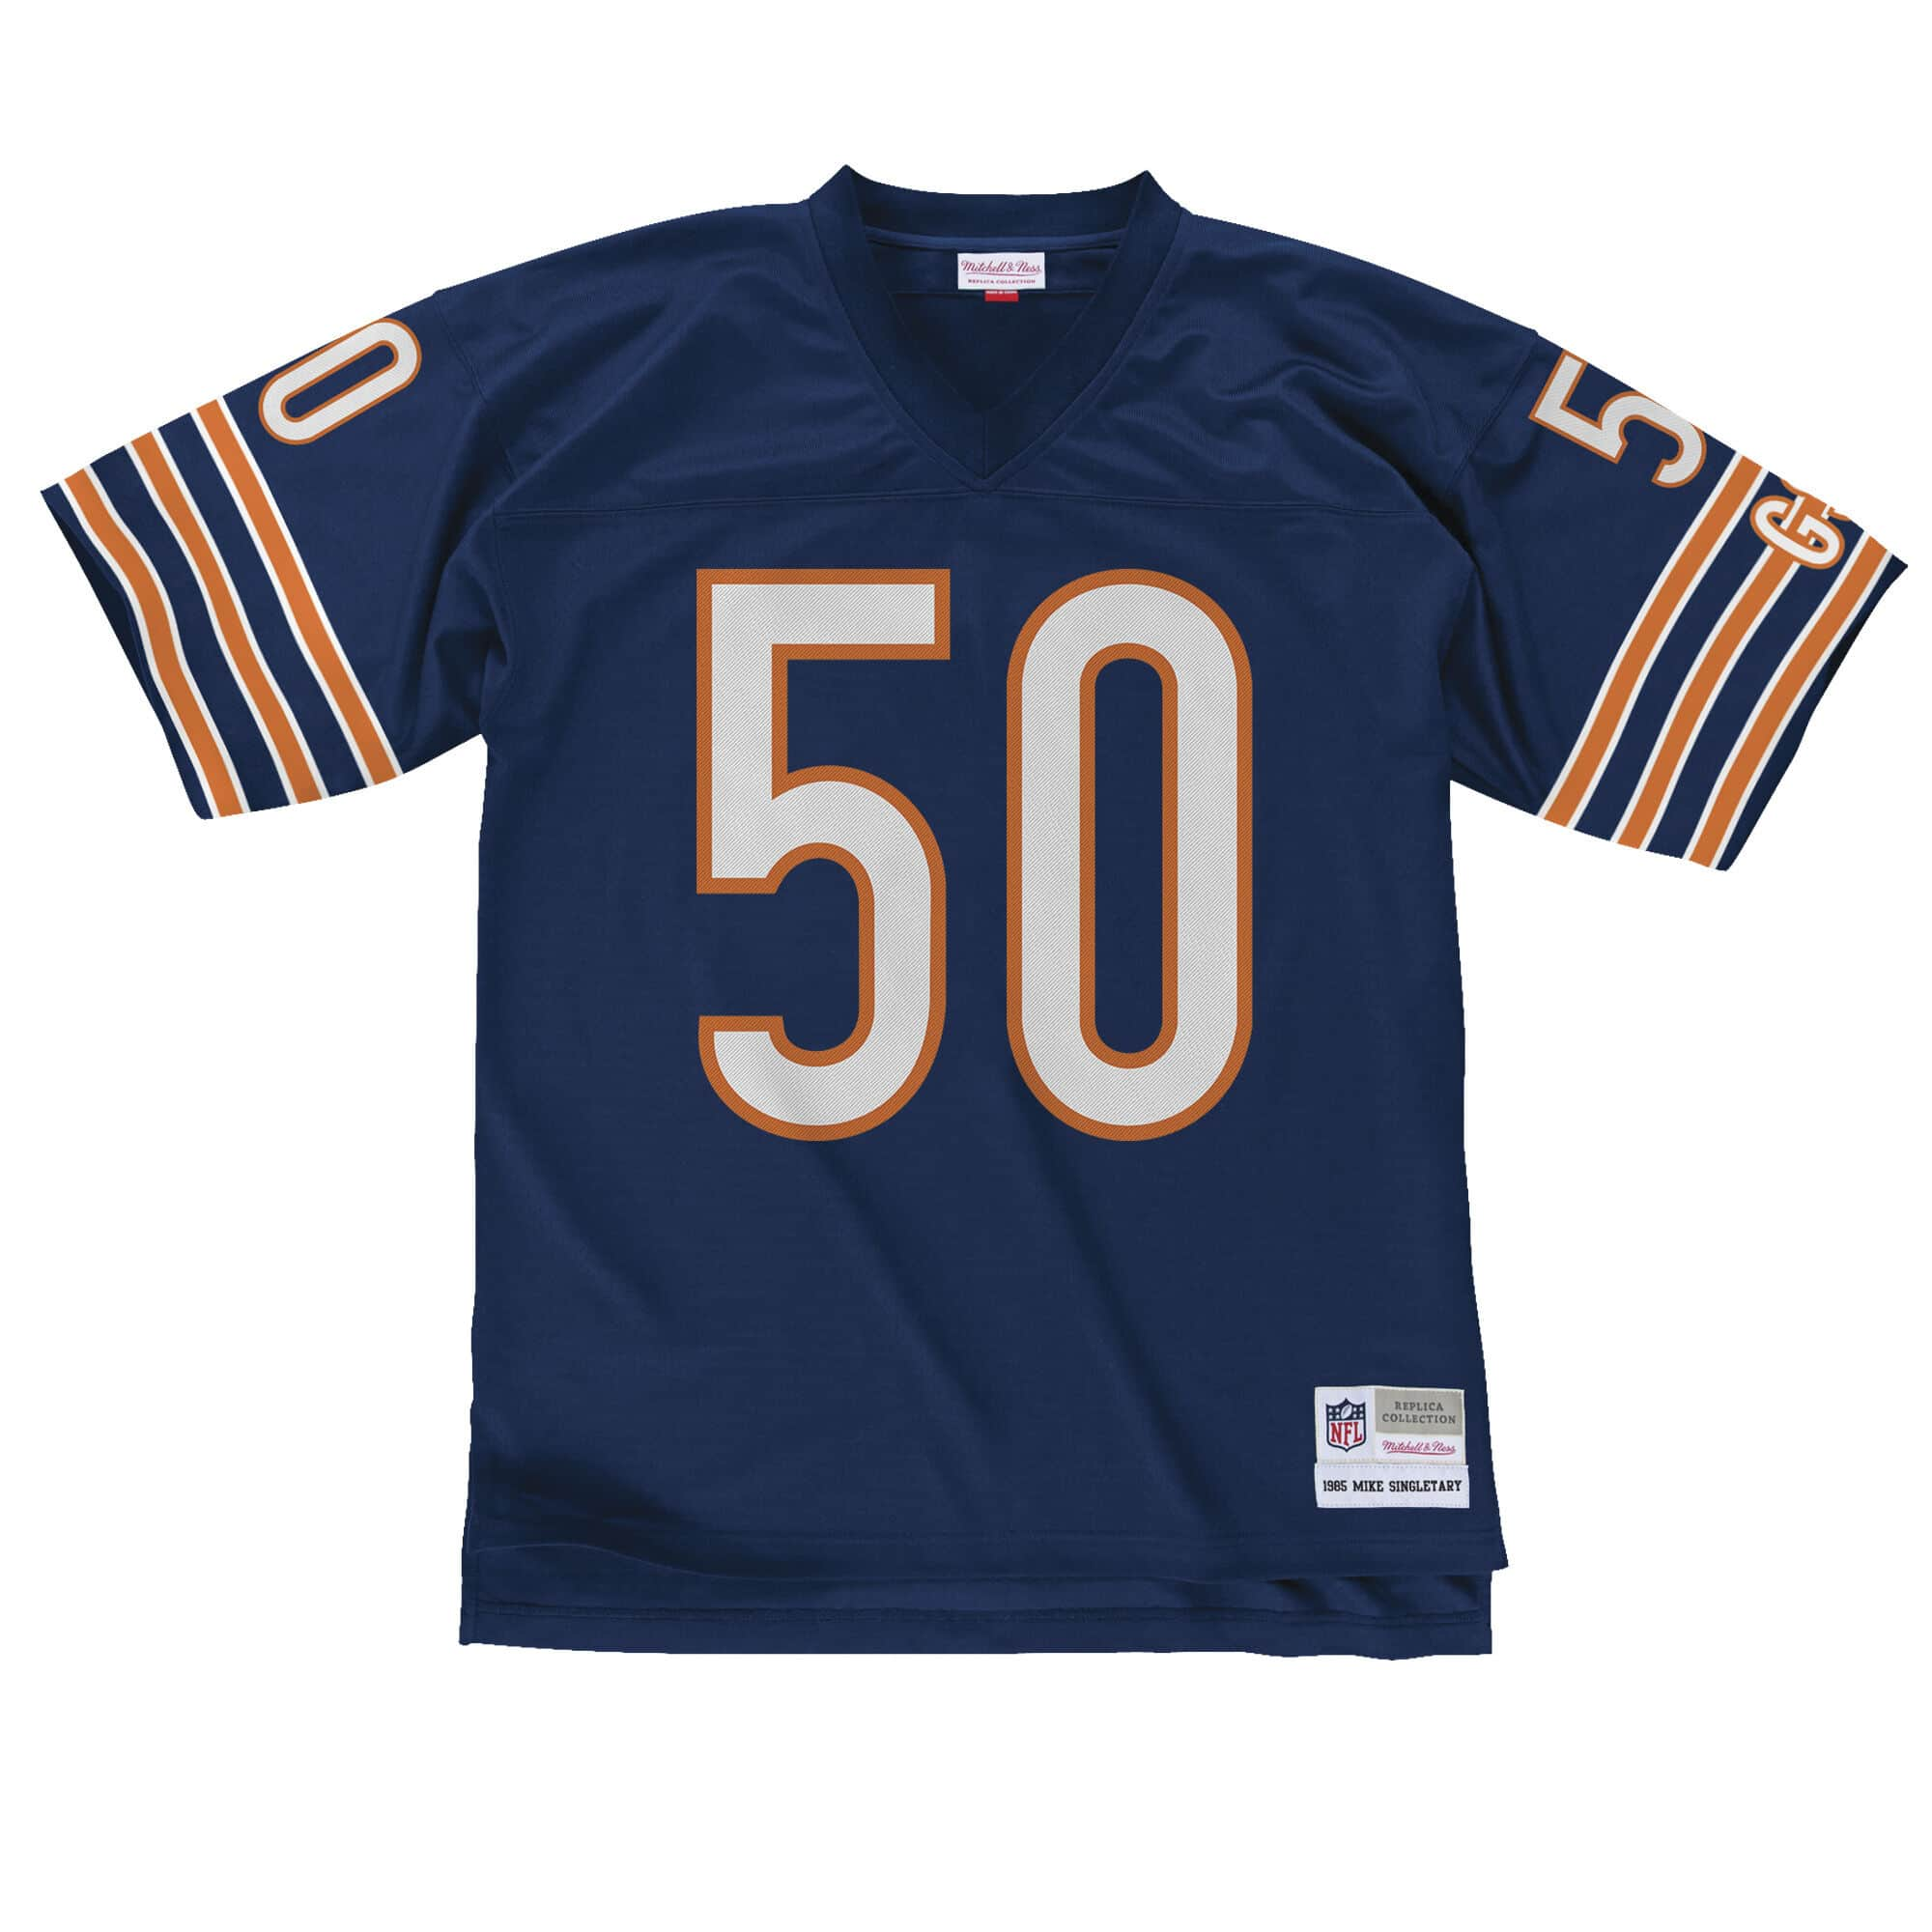 Mike Singletary Legacy Jersey 1985 Chicago Bears